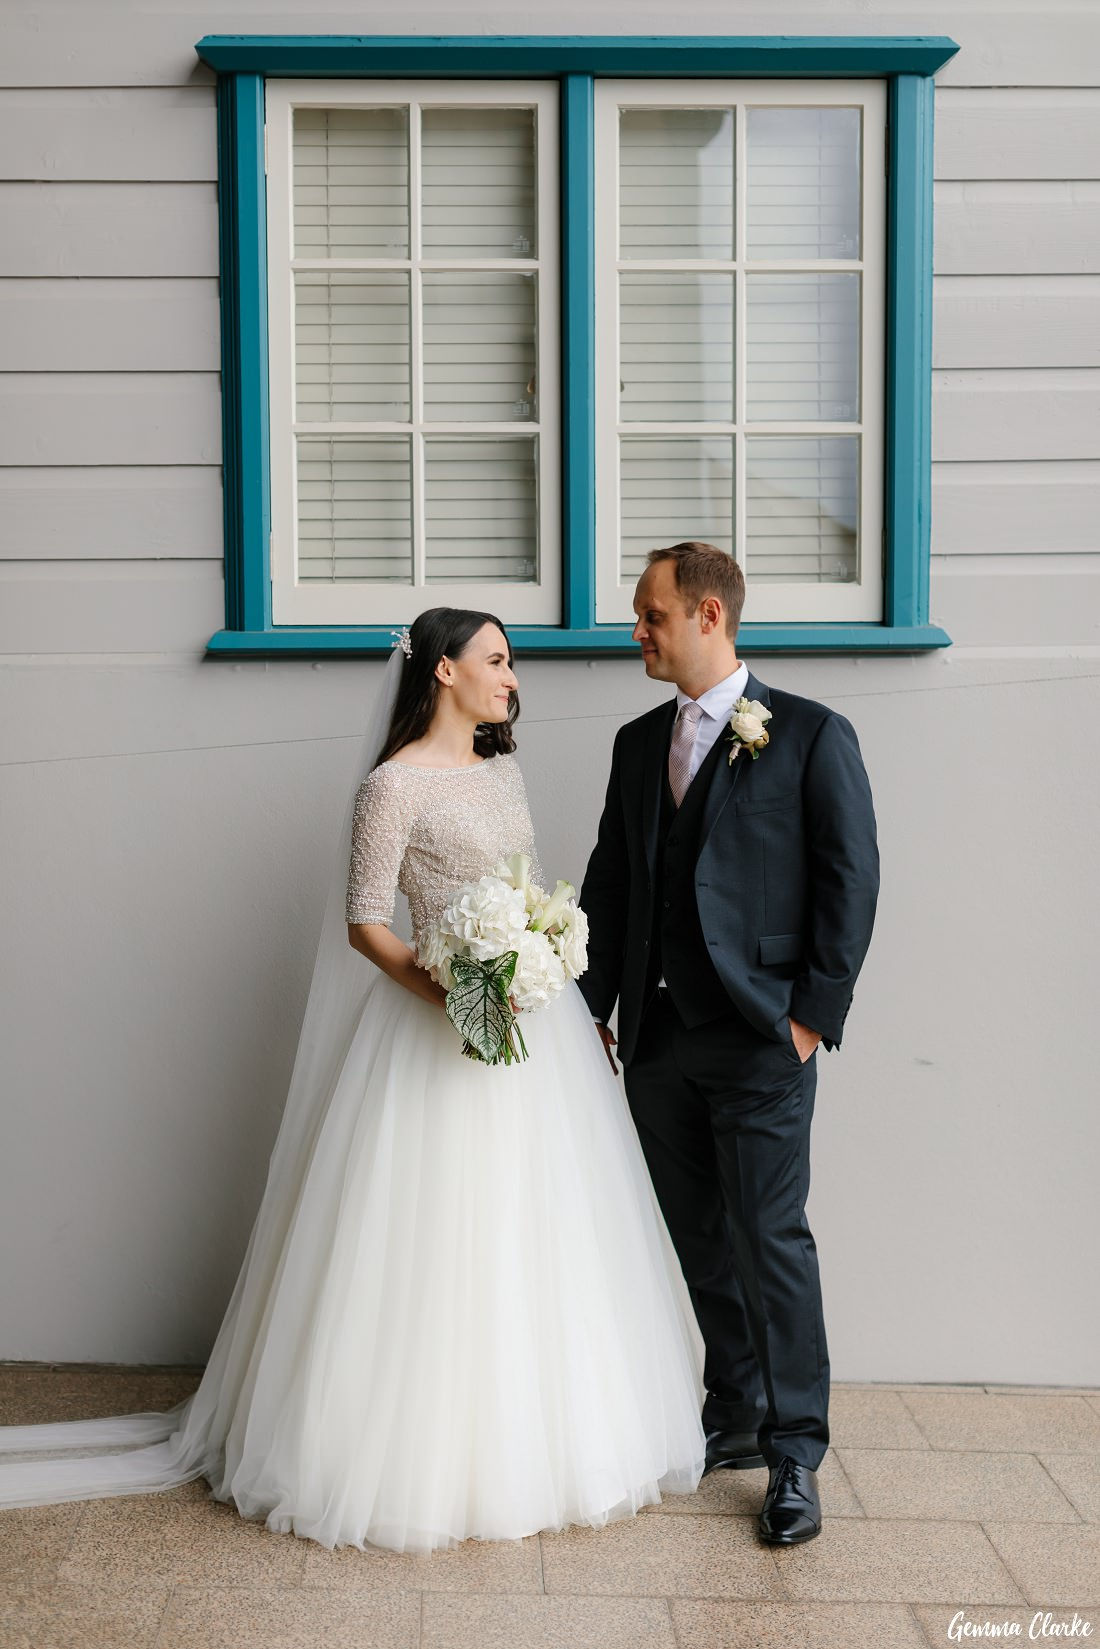 This Ovolo Hotel Wedding also means great photos around the wharves of Woolloomooloo!